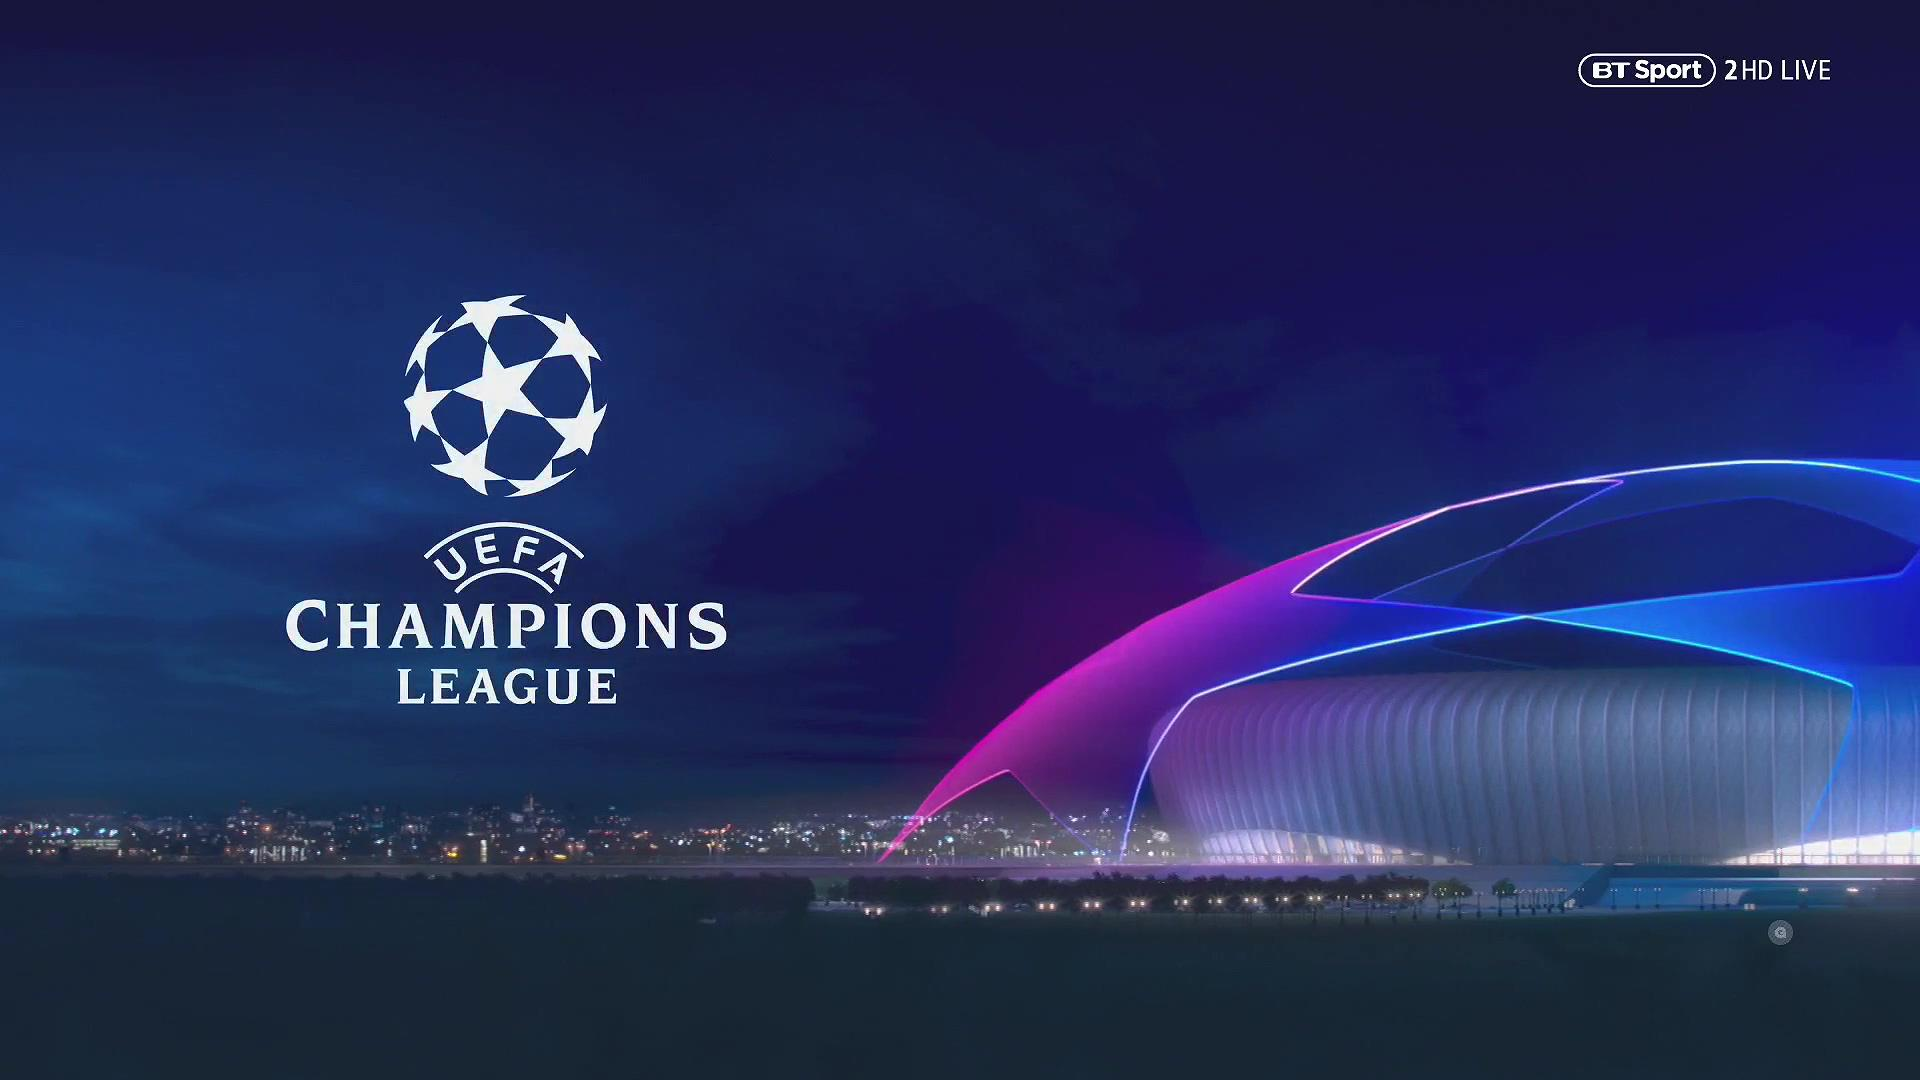 uefa champions league 2019 wallpapers wallpaper cave uefa champions league 2019 wallpapers